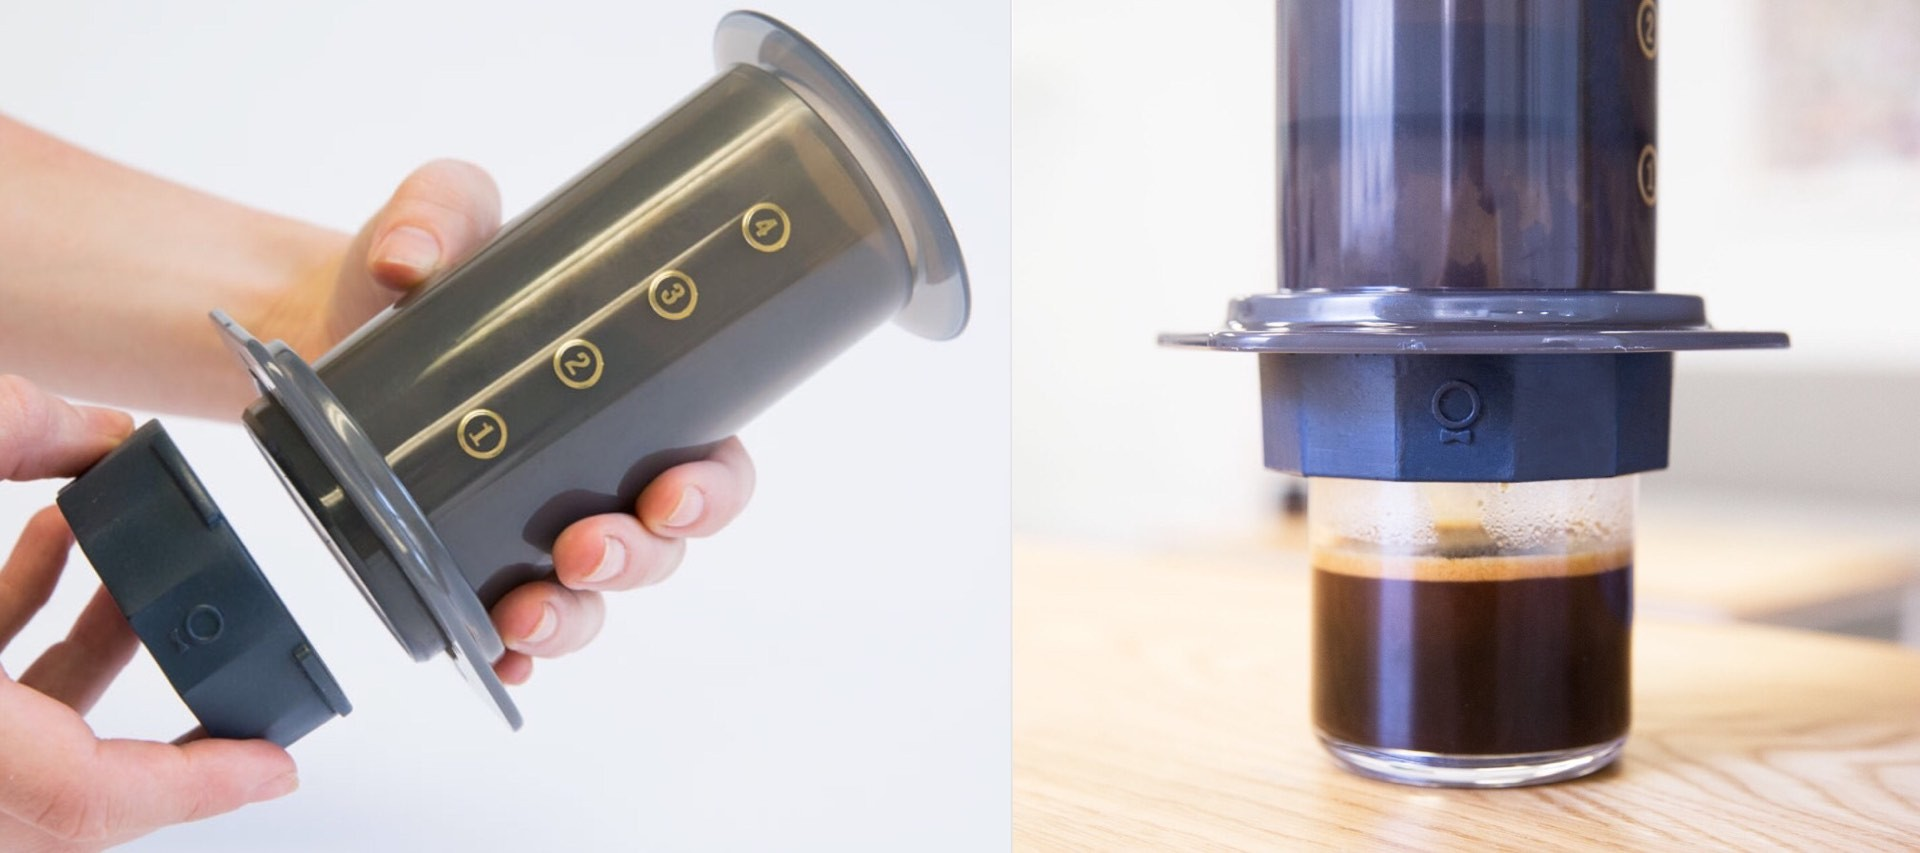 If you've brewed with an AeroPress before, you'll feel right at home using Prismo.